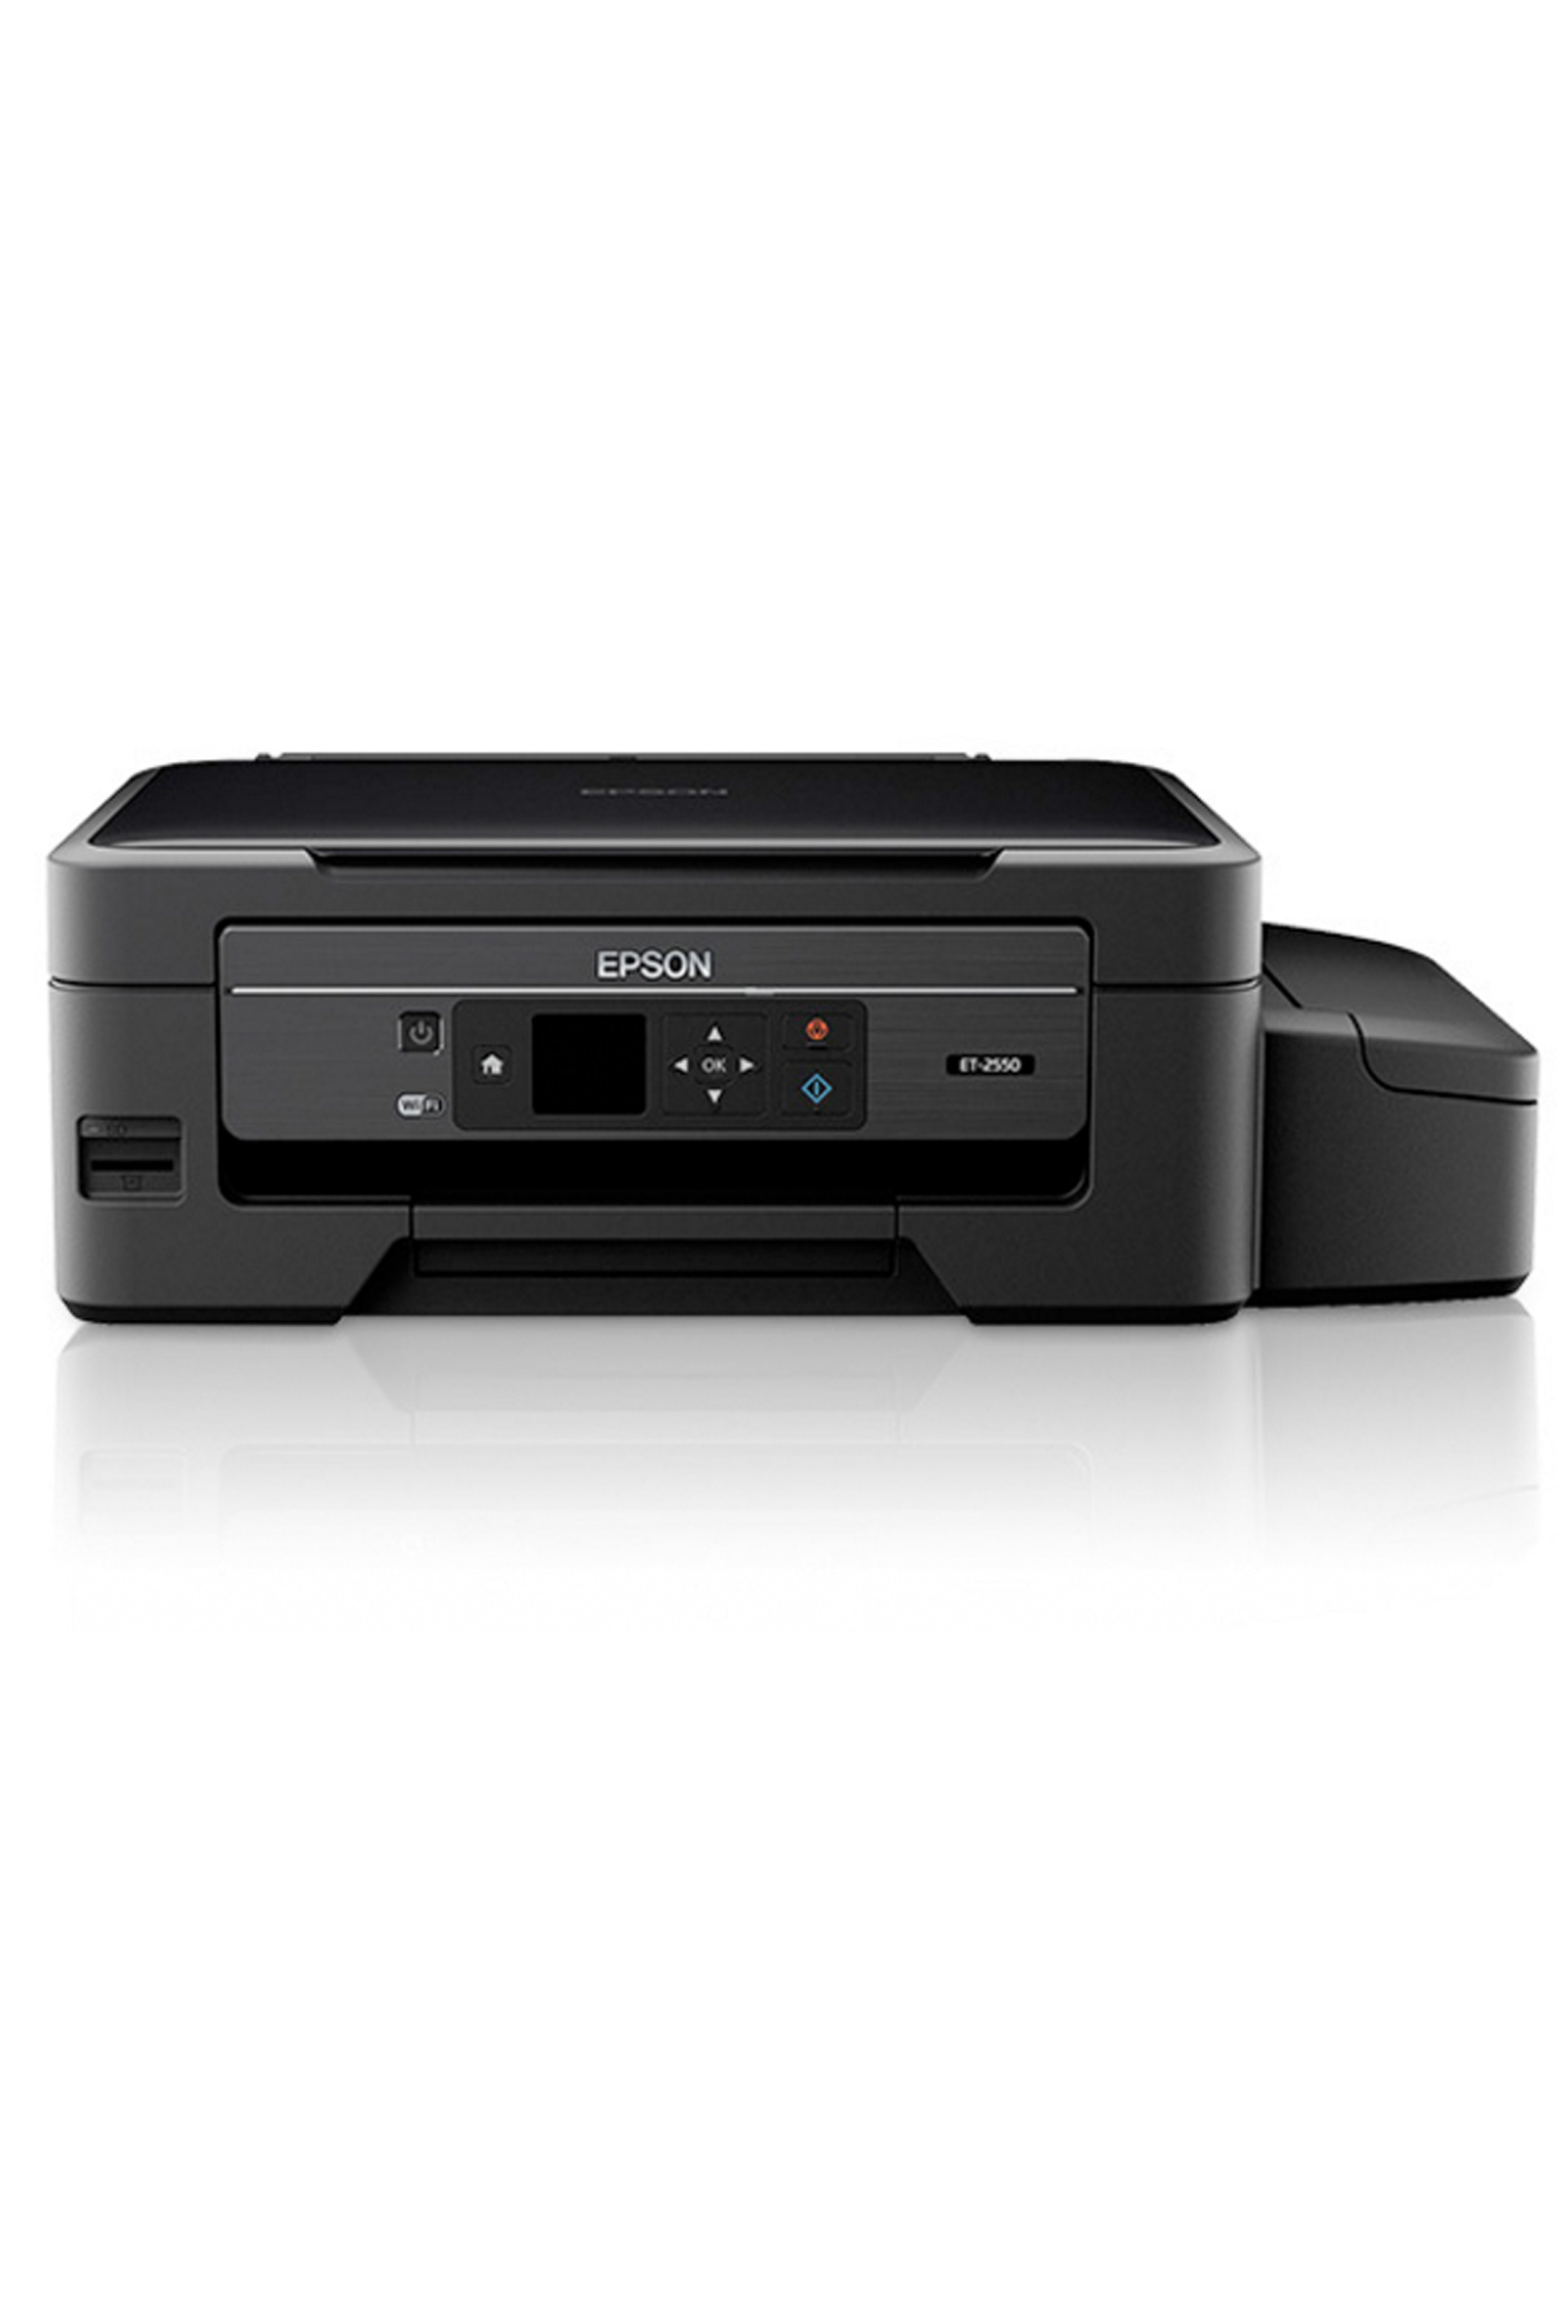 Epson Expression Premium XP-830 Small-in-One All-in-One...